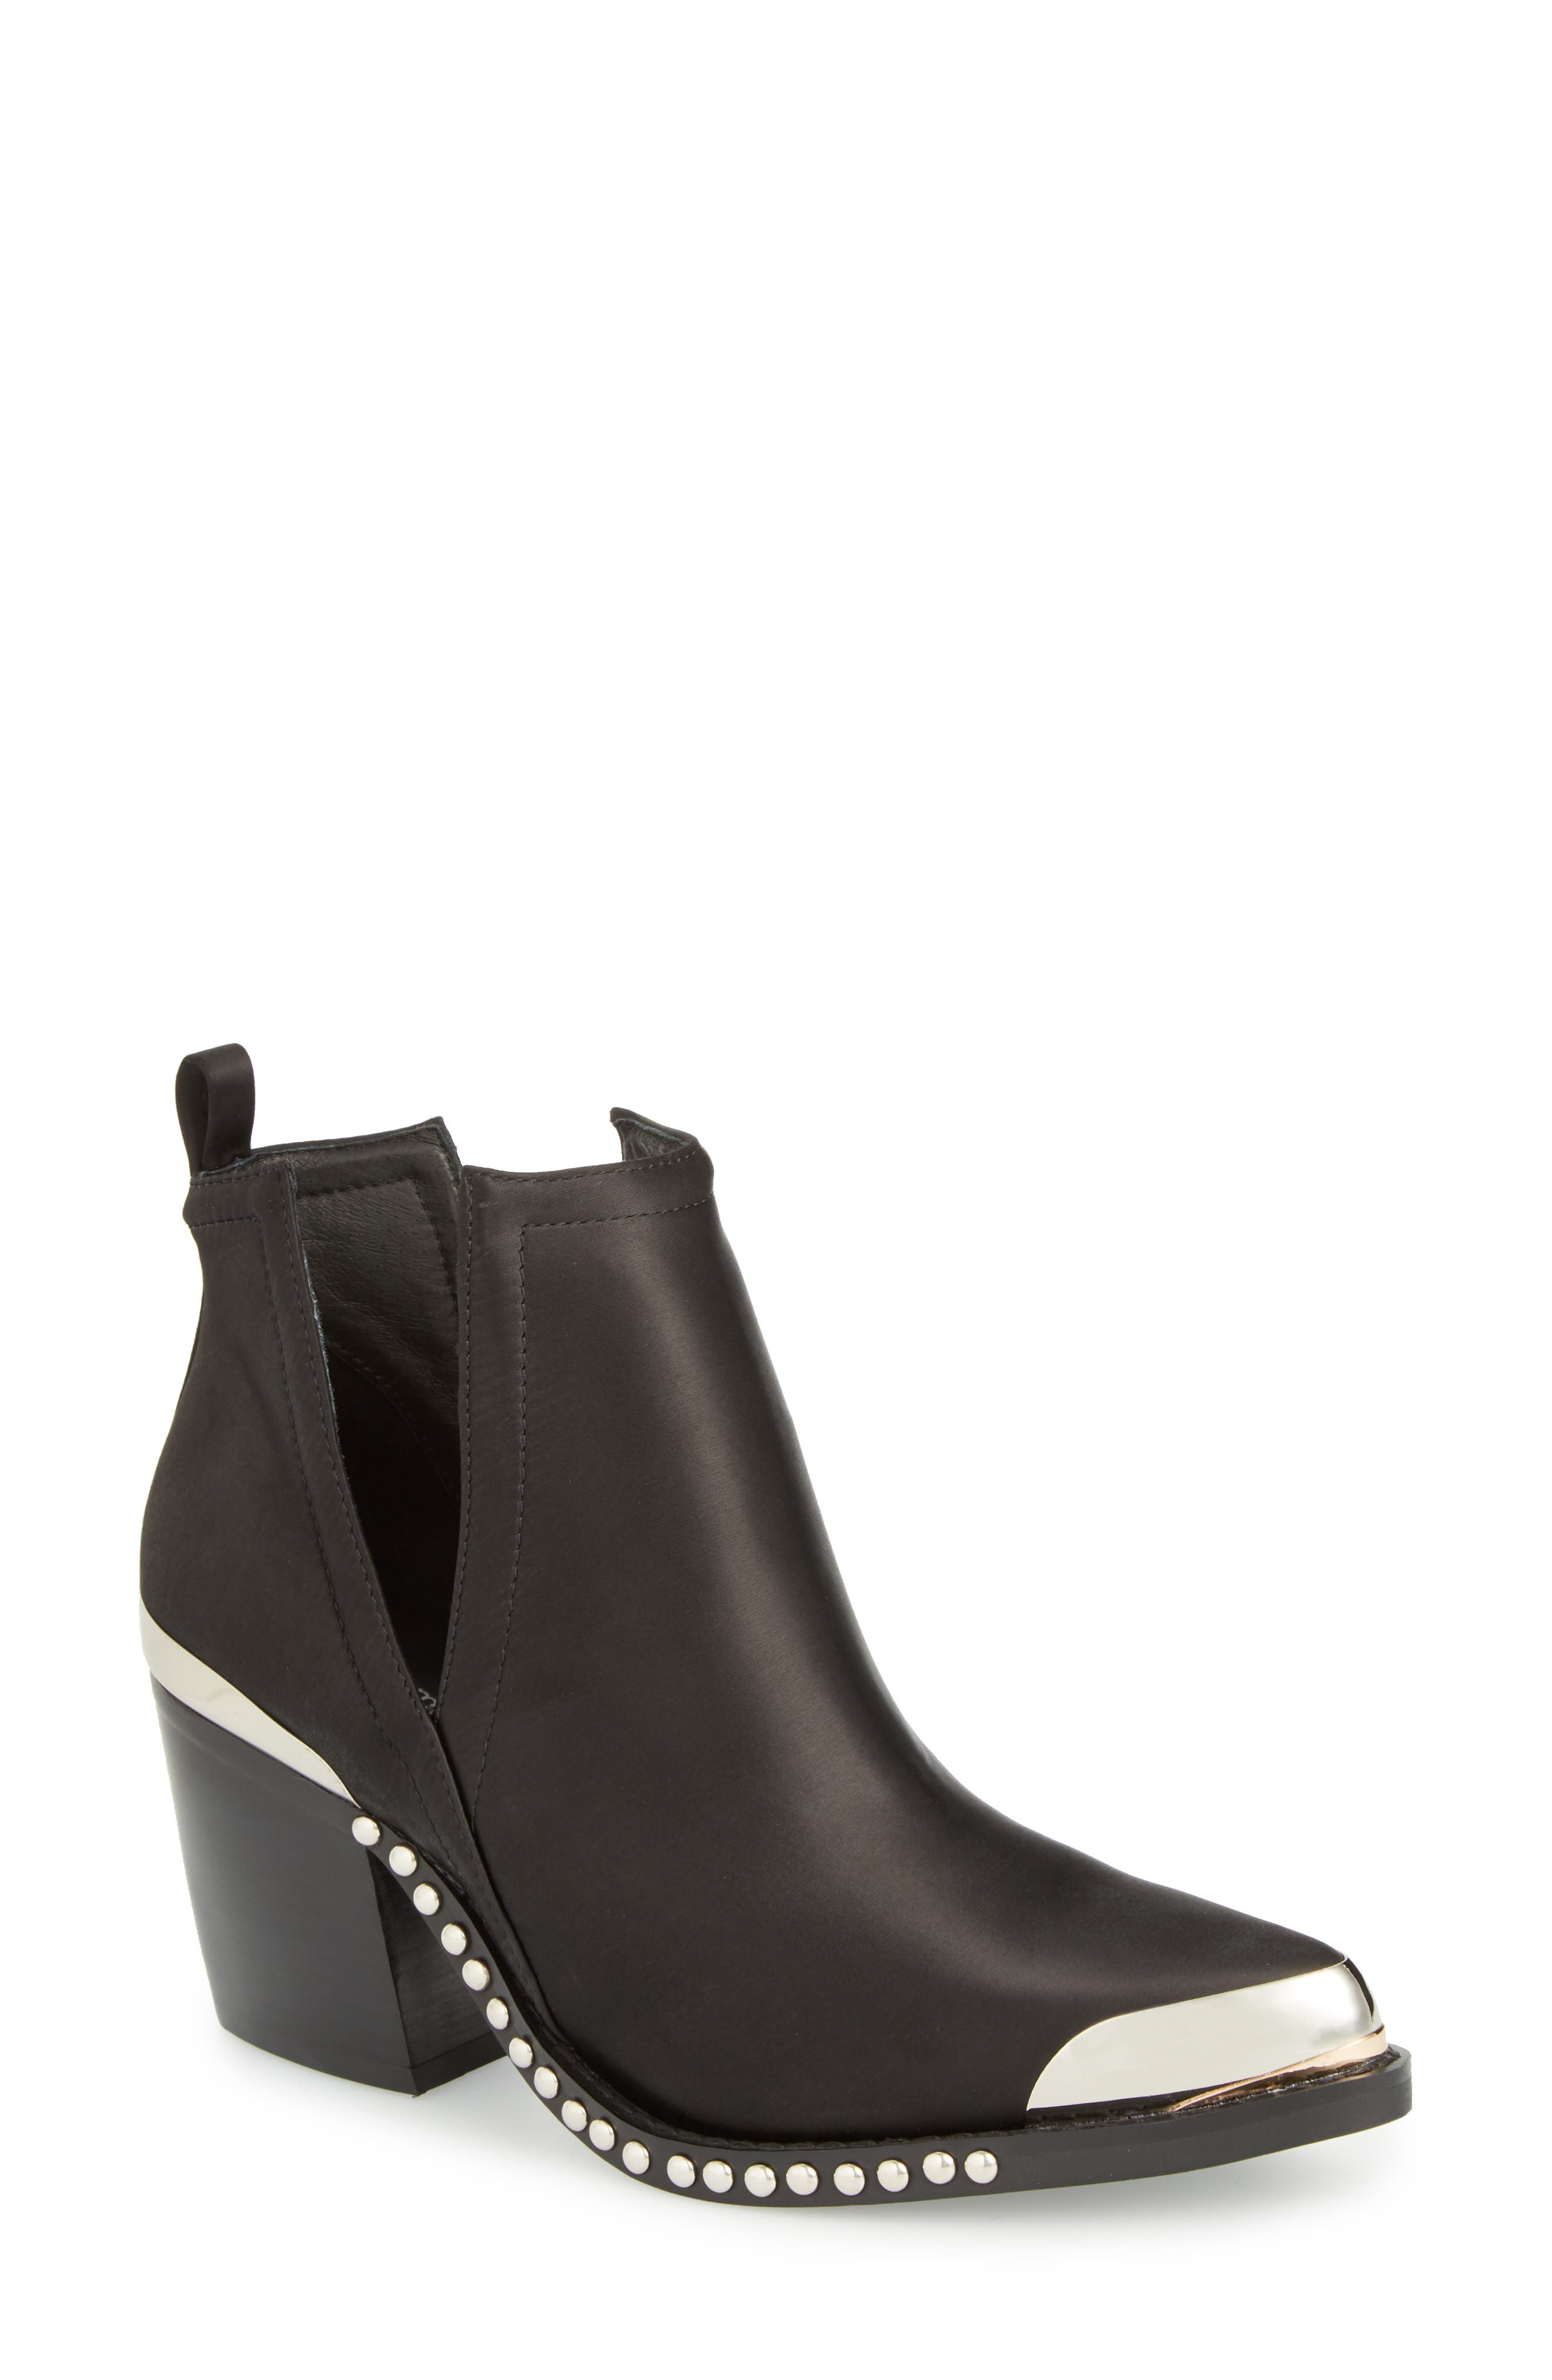 Optimum Pointy Toe Bootie,                             Main thumbnail 1, color,                             001